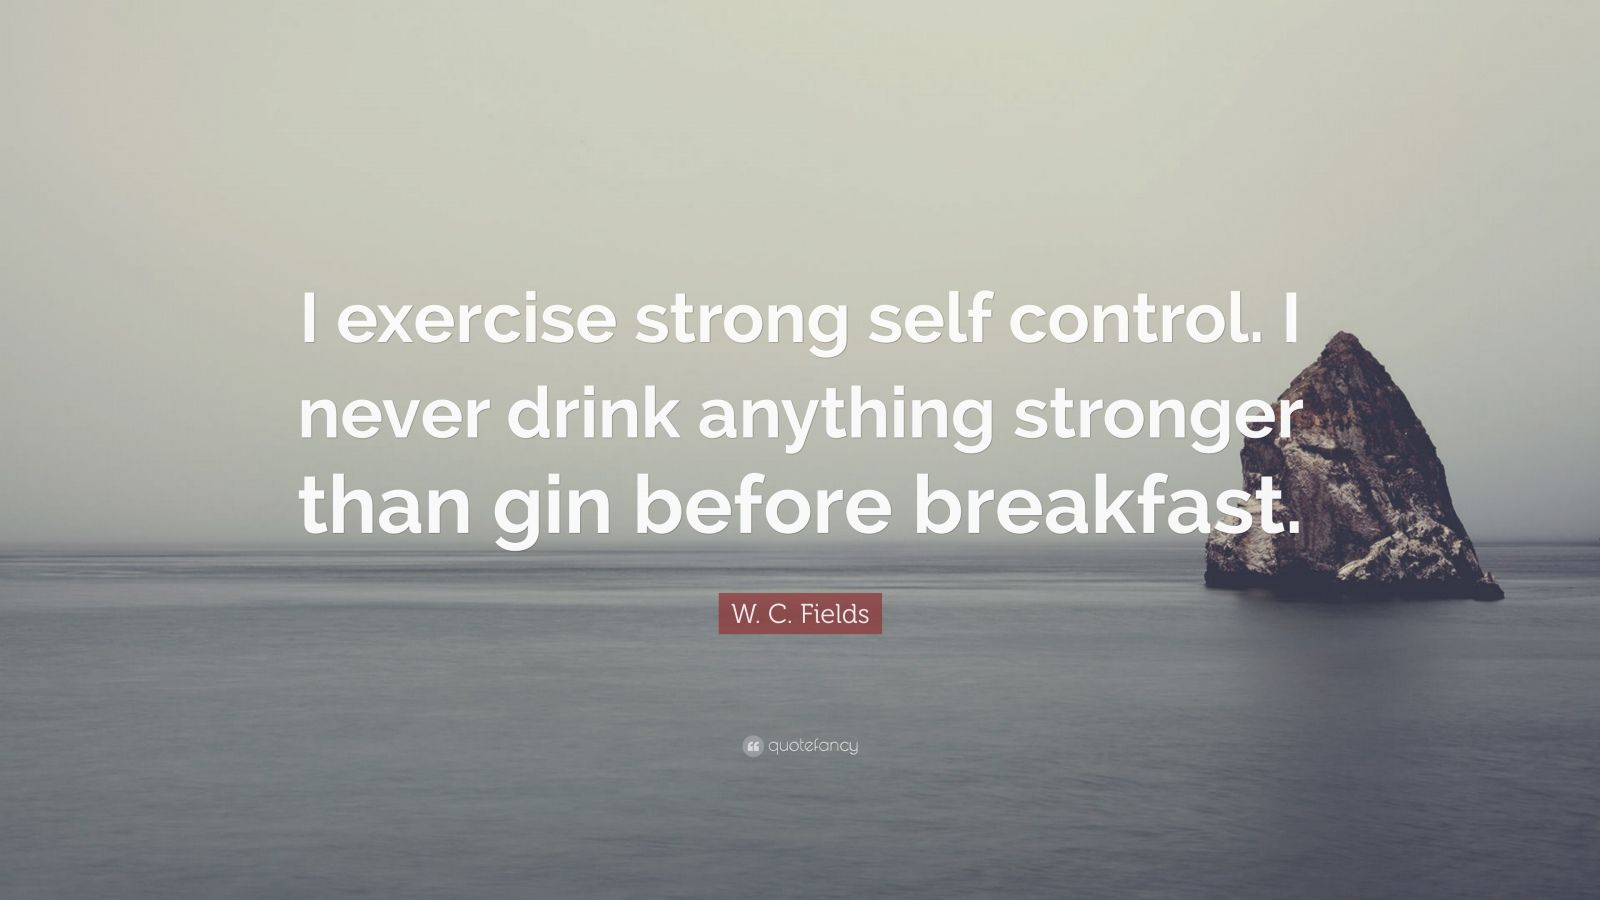 """W. C. Fields Quote: """"I exercise strong self control. I never drink anything stronger than gin before breakfast."""""""